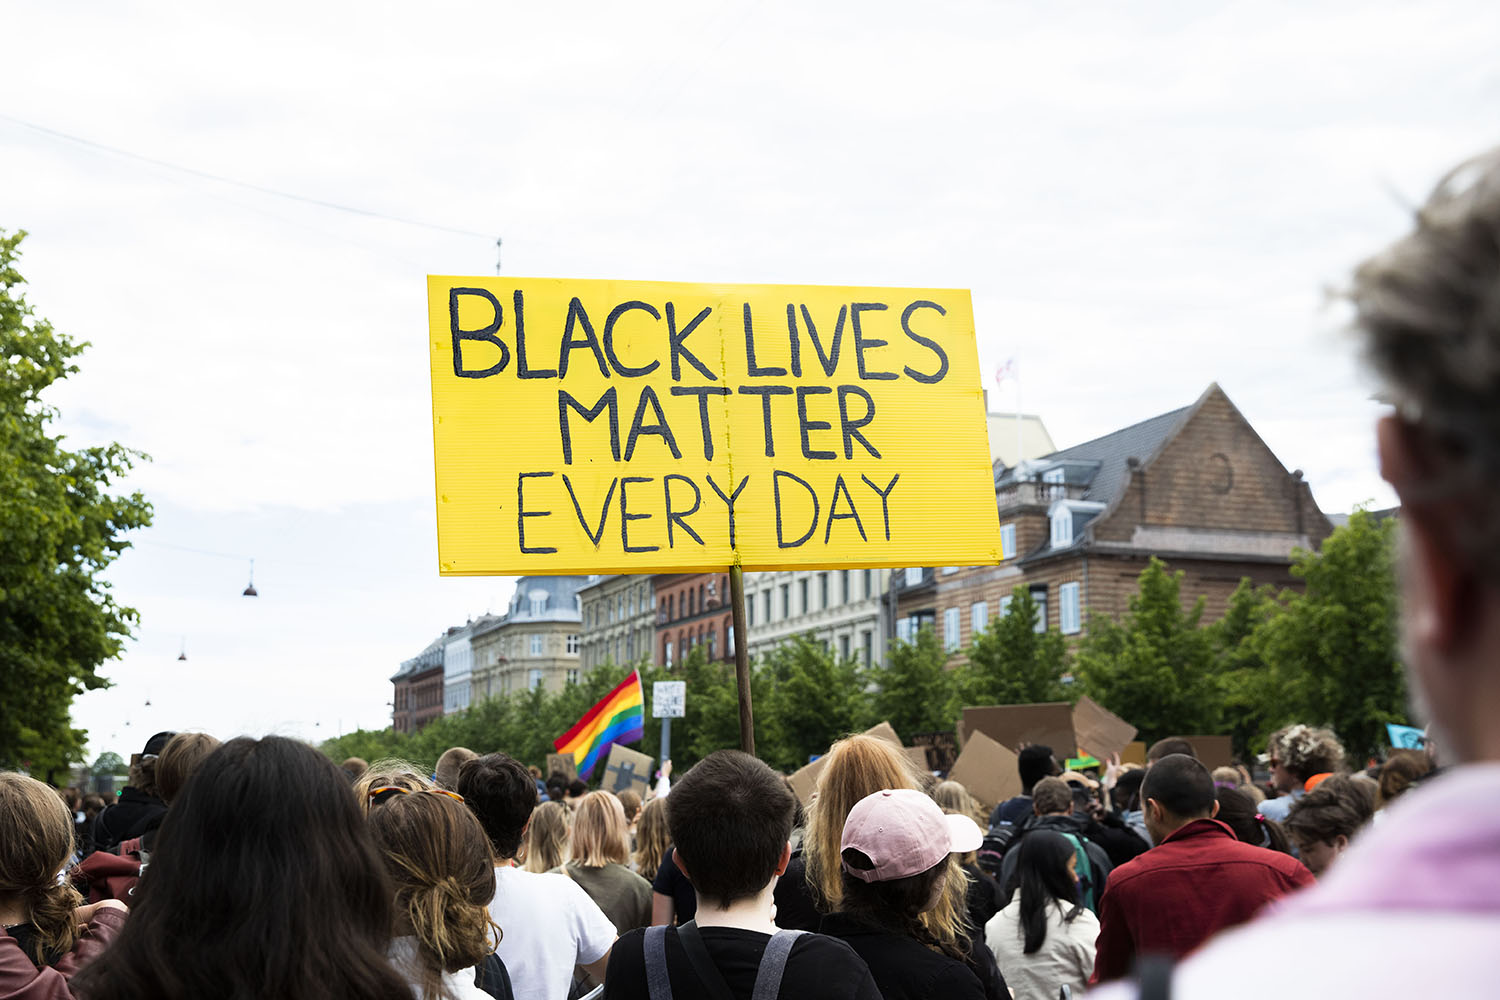 BlackLivesMatterDK_DEMO_070620_HelenaLundquist_mindre_10